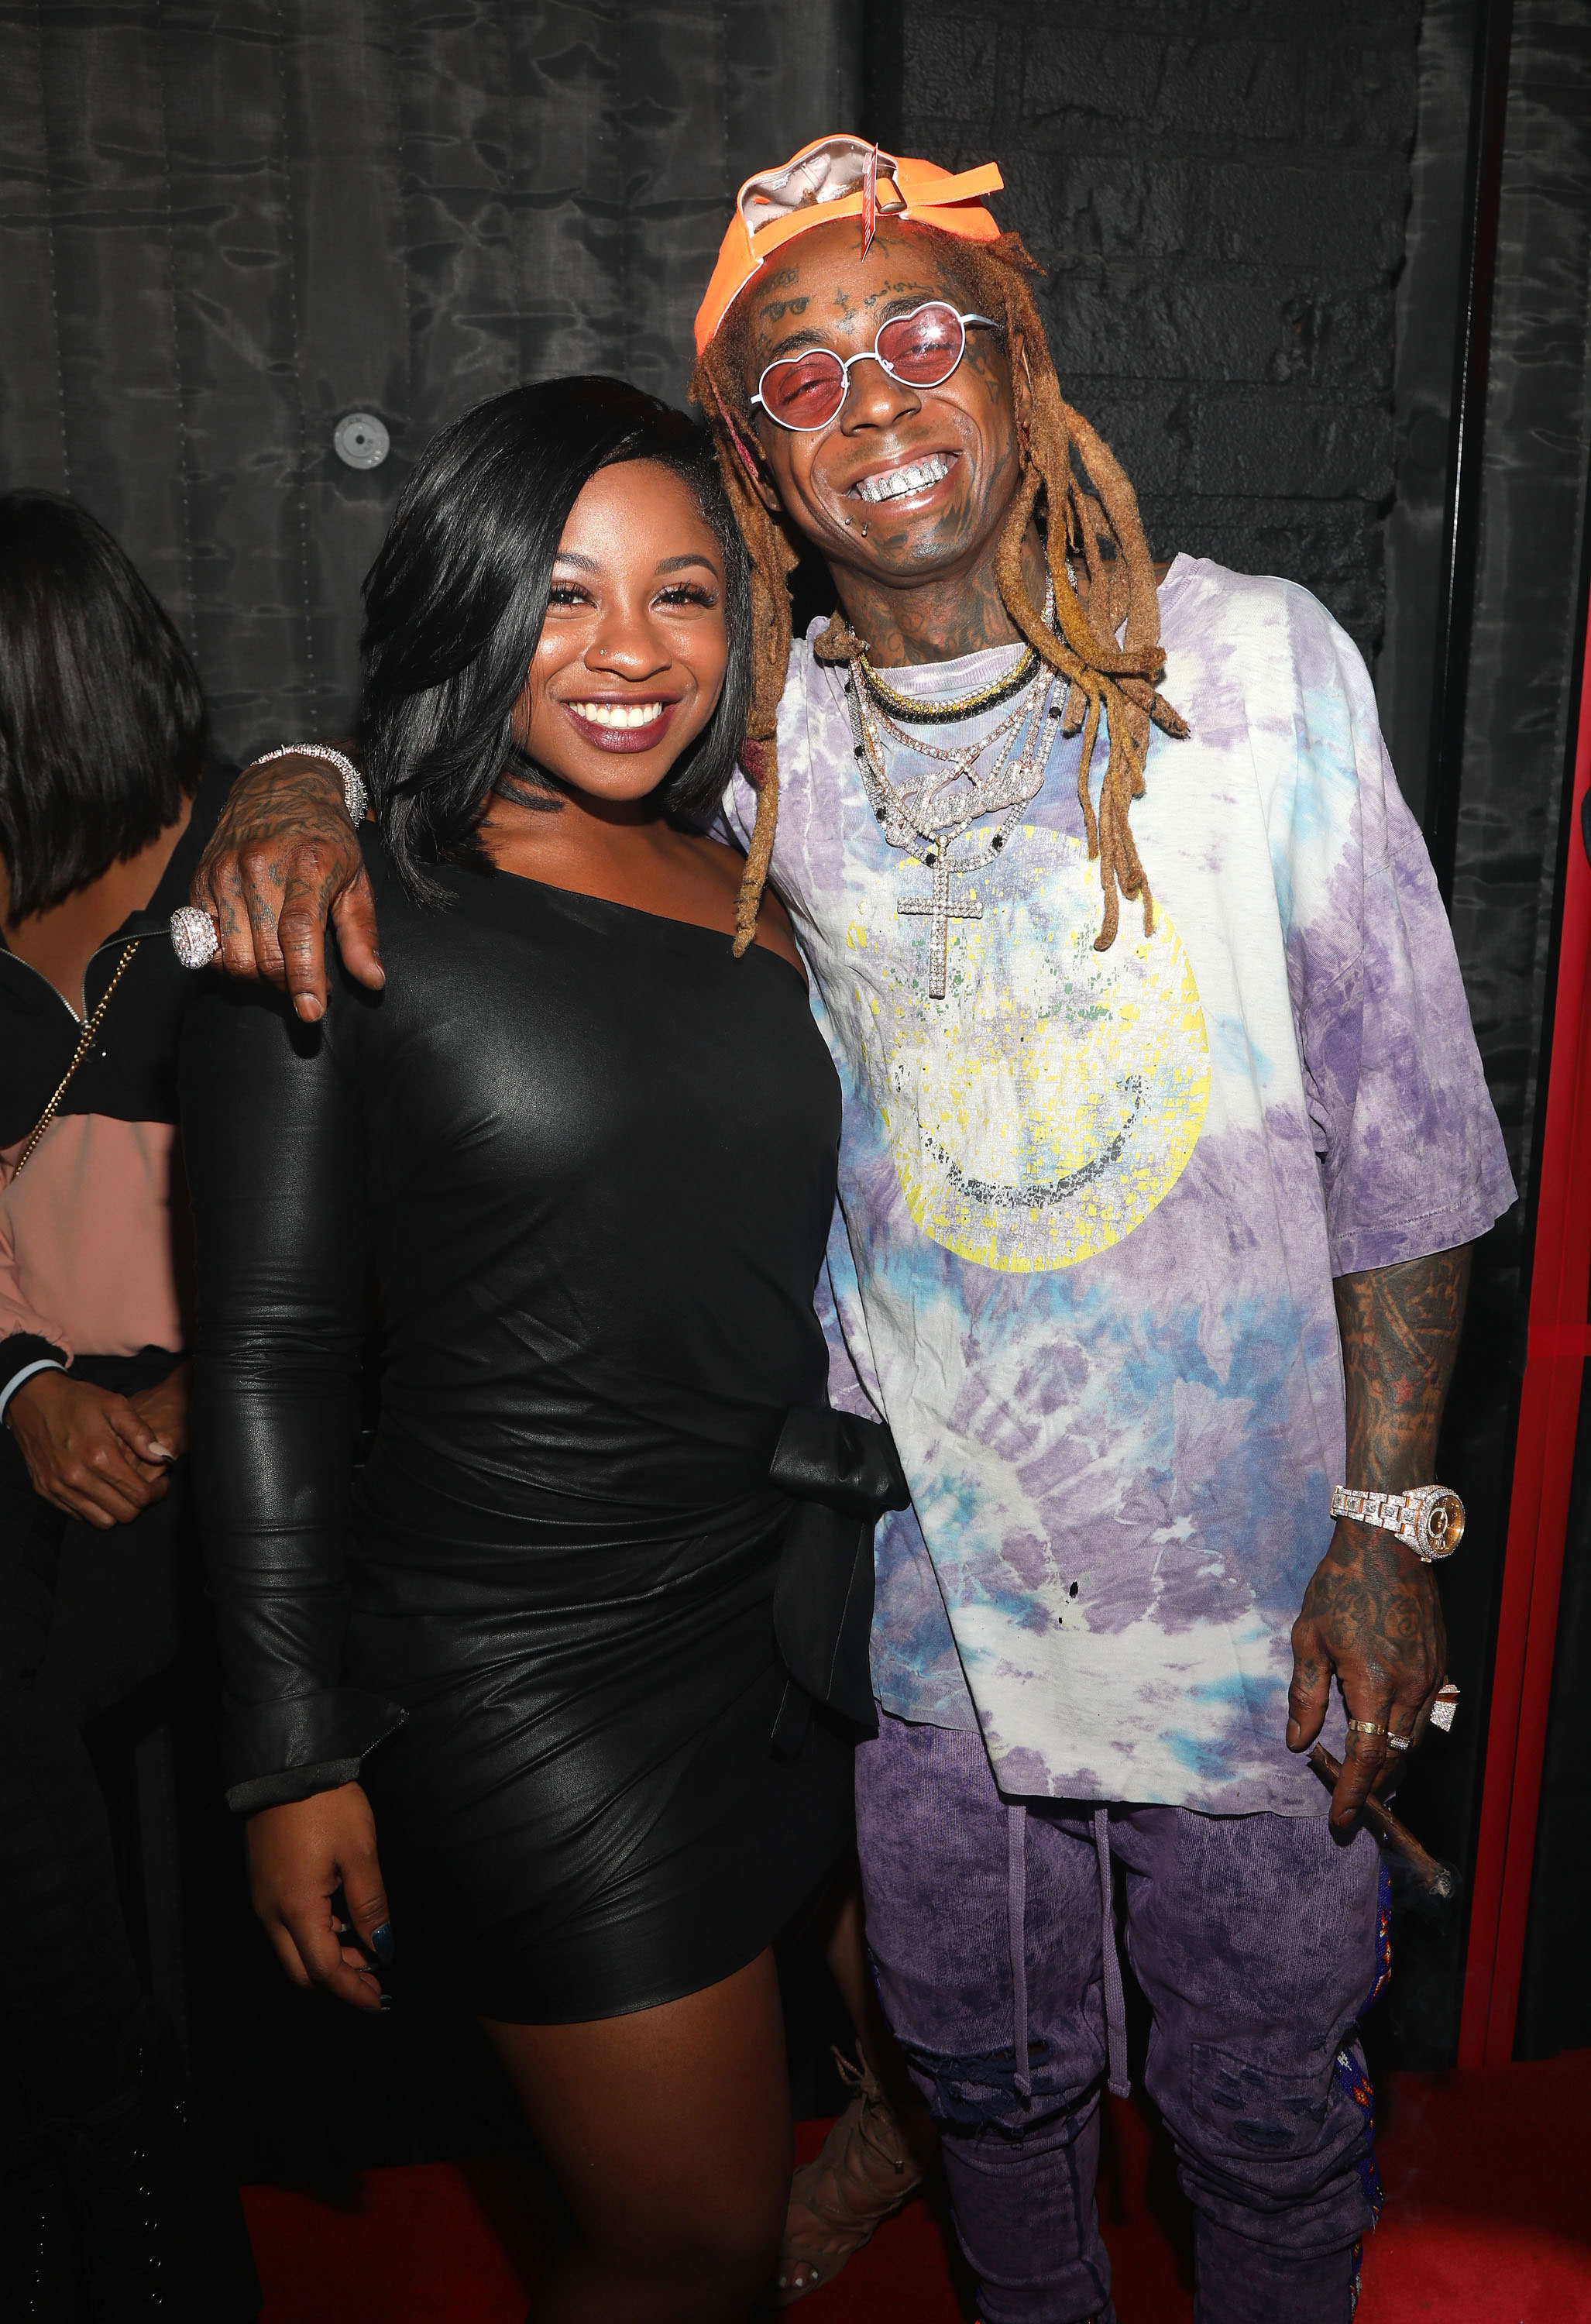 Celebs mingle without masks at birthday party for Lil Wayne's daughter